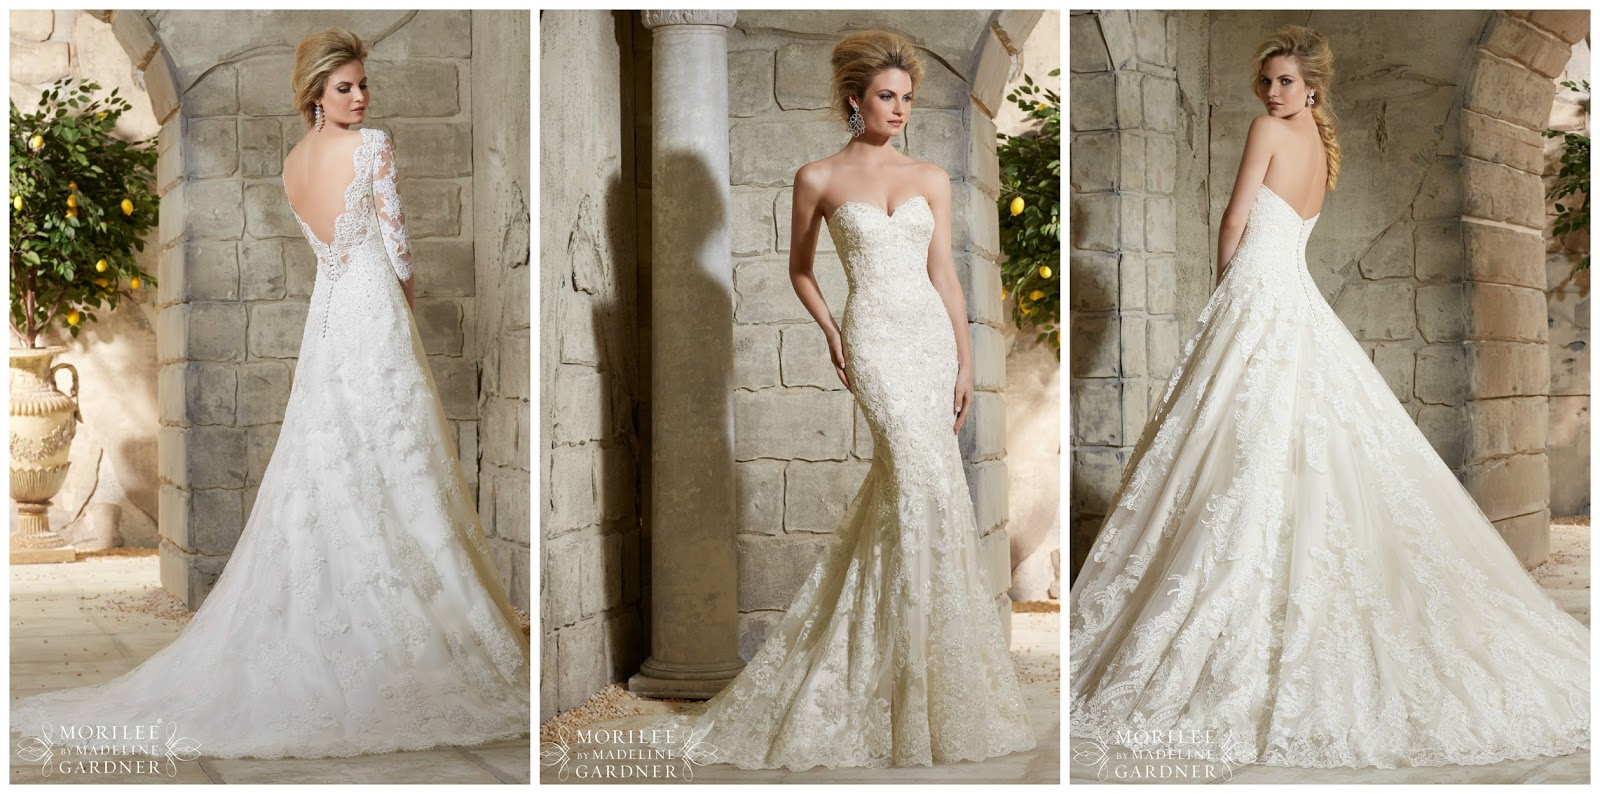 Brides of America Online Store: Make Your Appointment for Our Mori ...